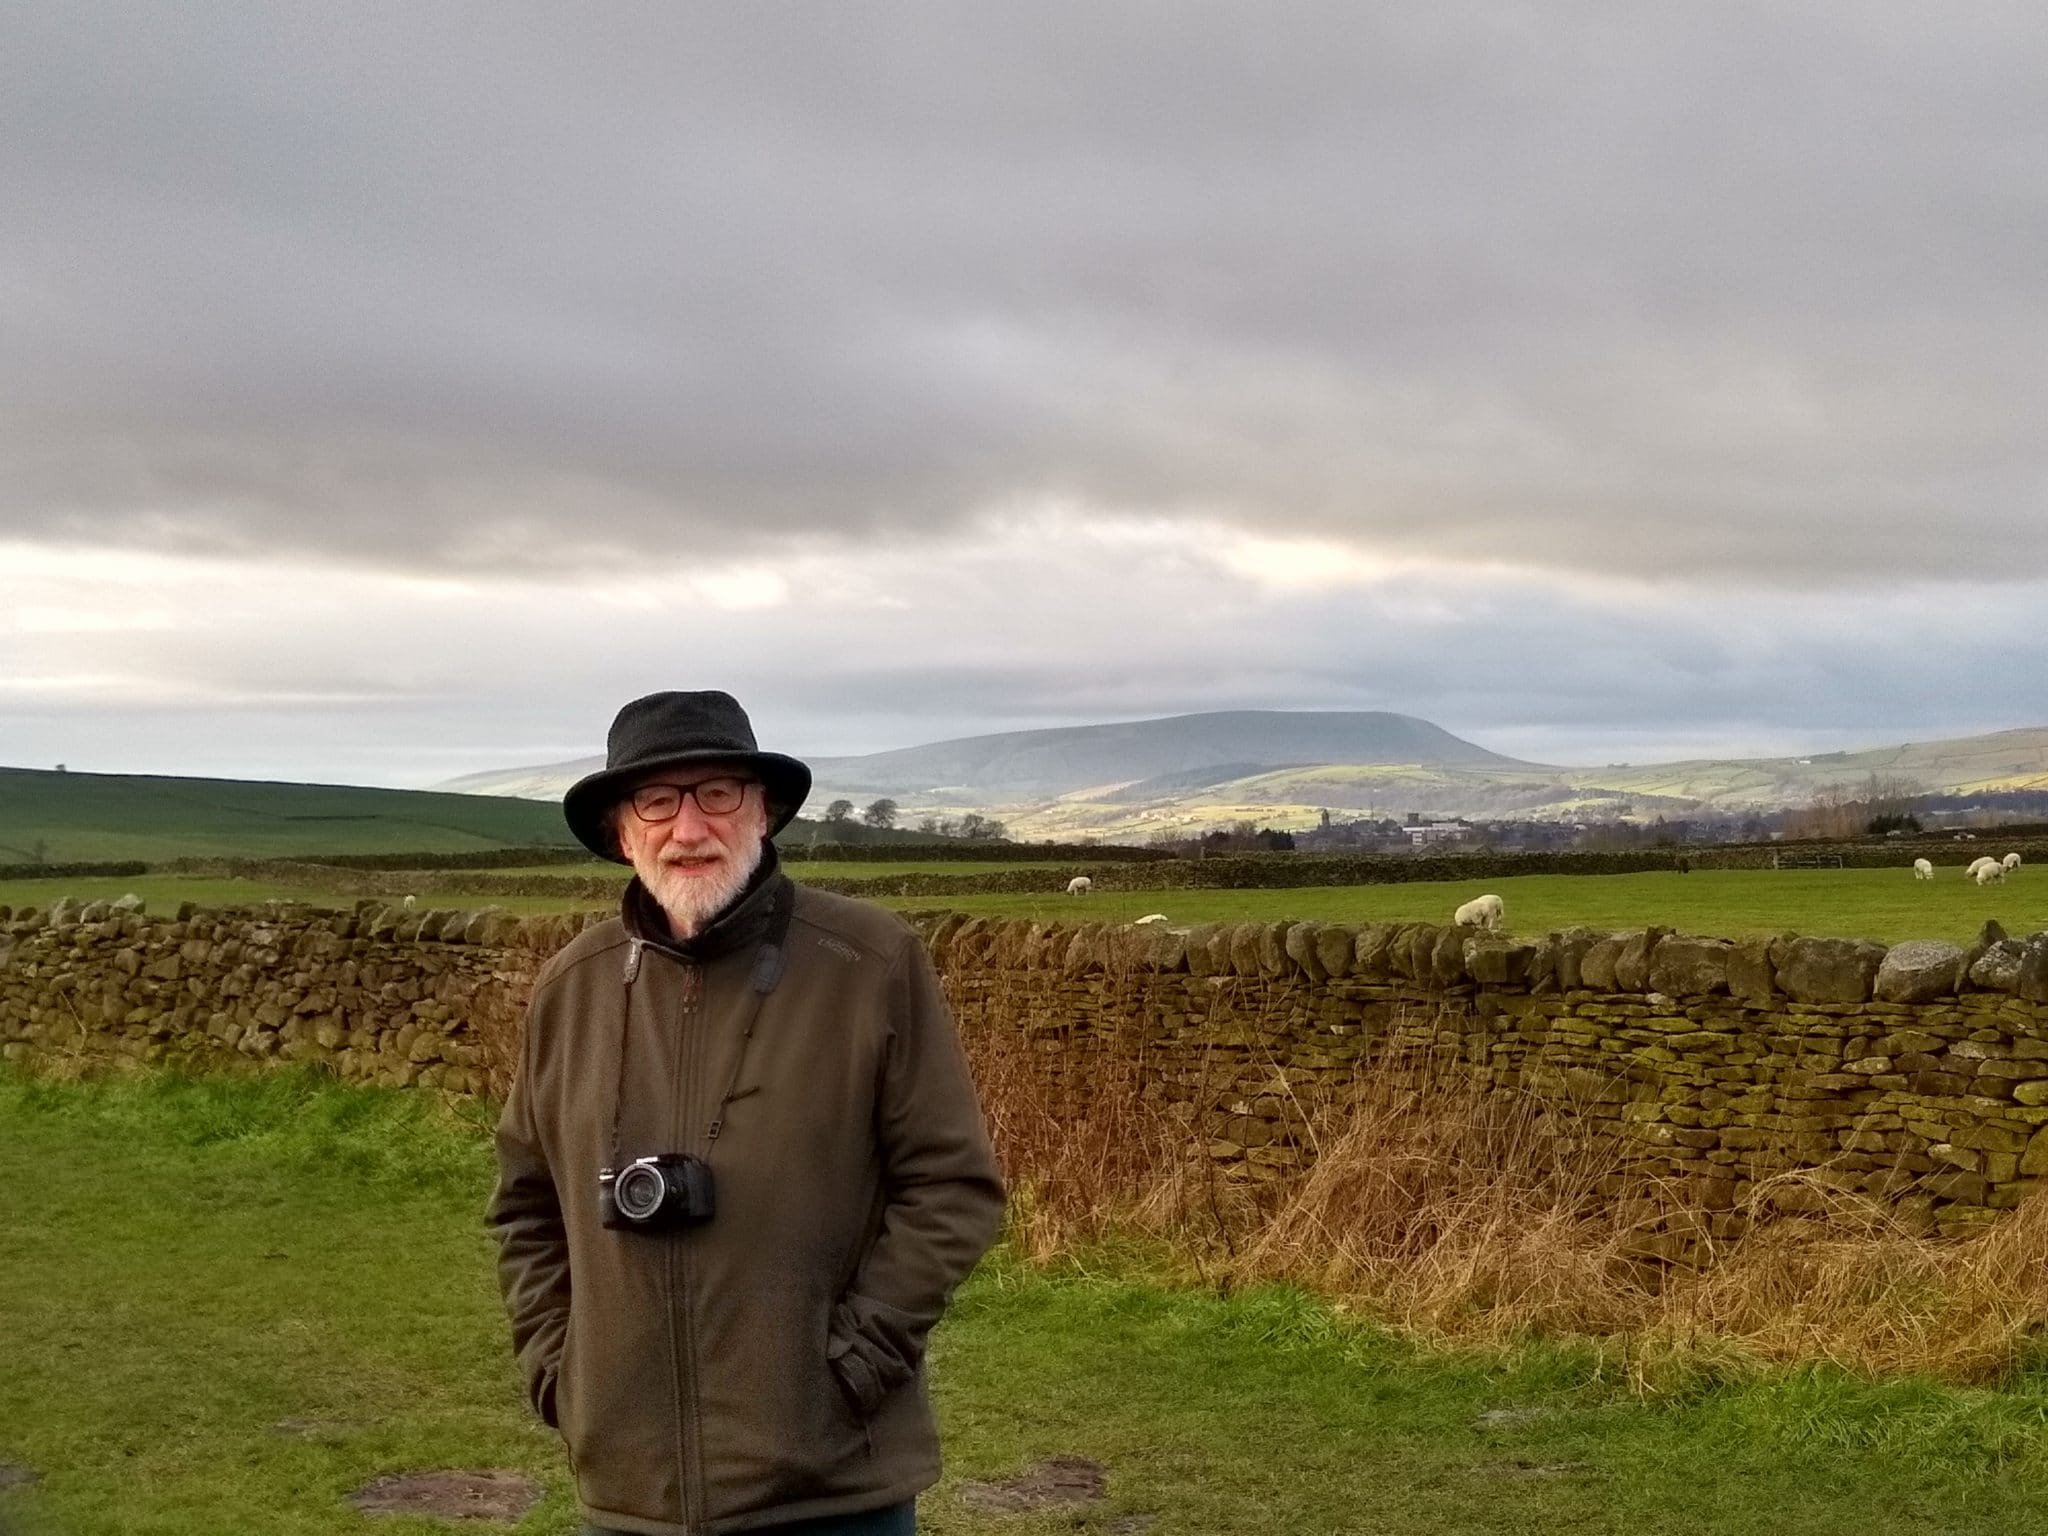 Tony on Trawden recreation ground with Pendle Hill behind, Christmas day family meet-up outdoors, 2020